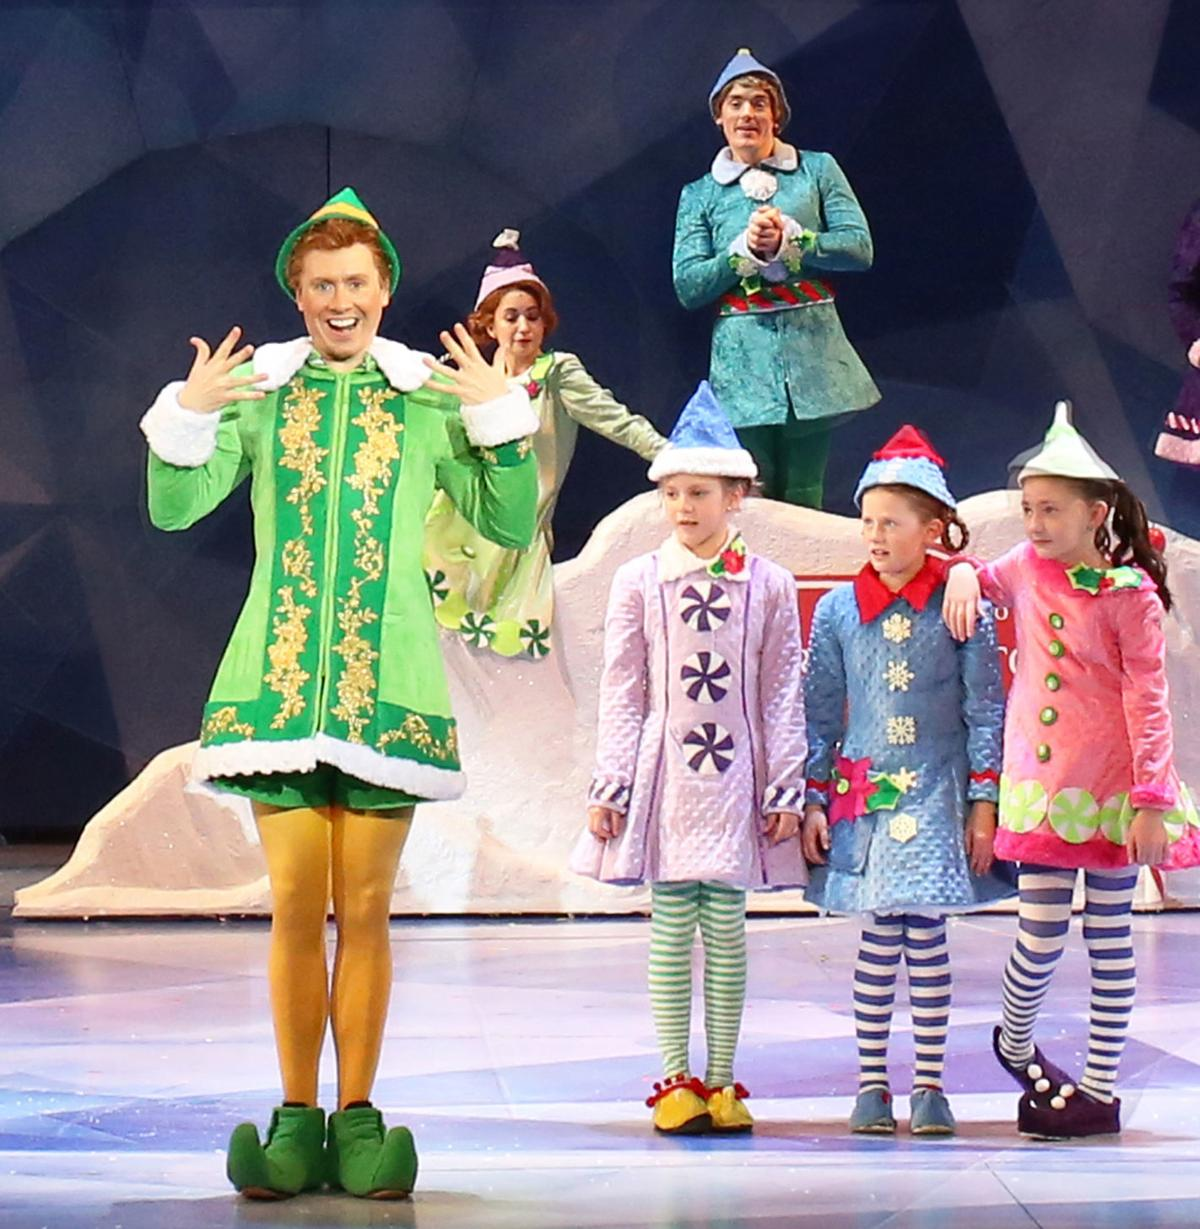 Steven Booth stars in 'Elf the Musical' at Portsmouth's Music Hall